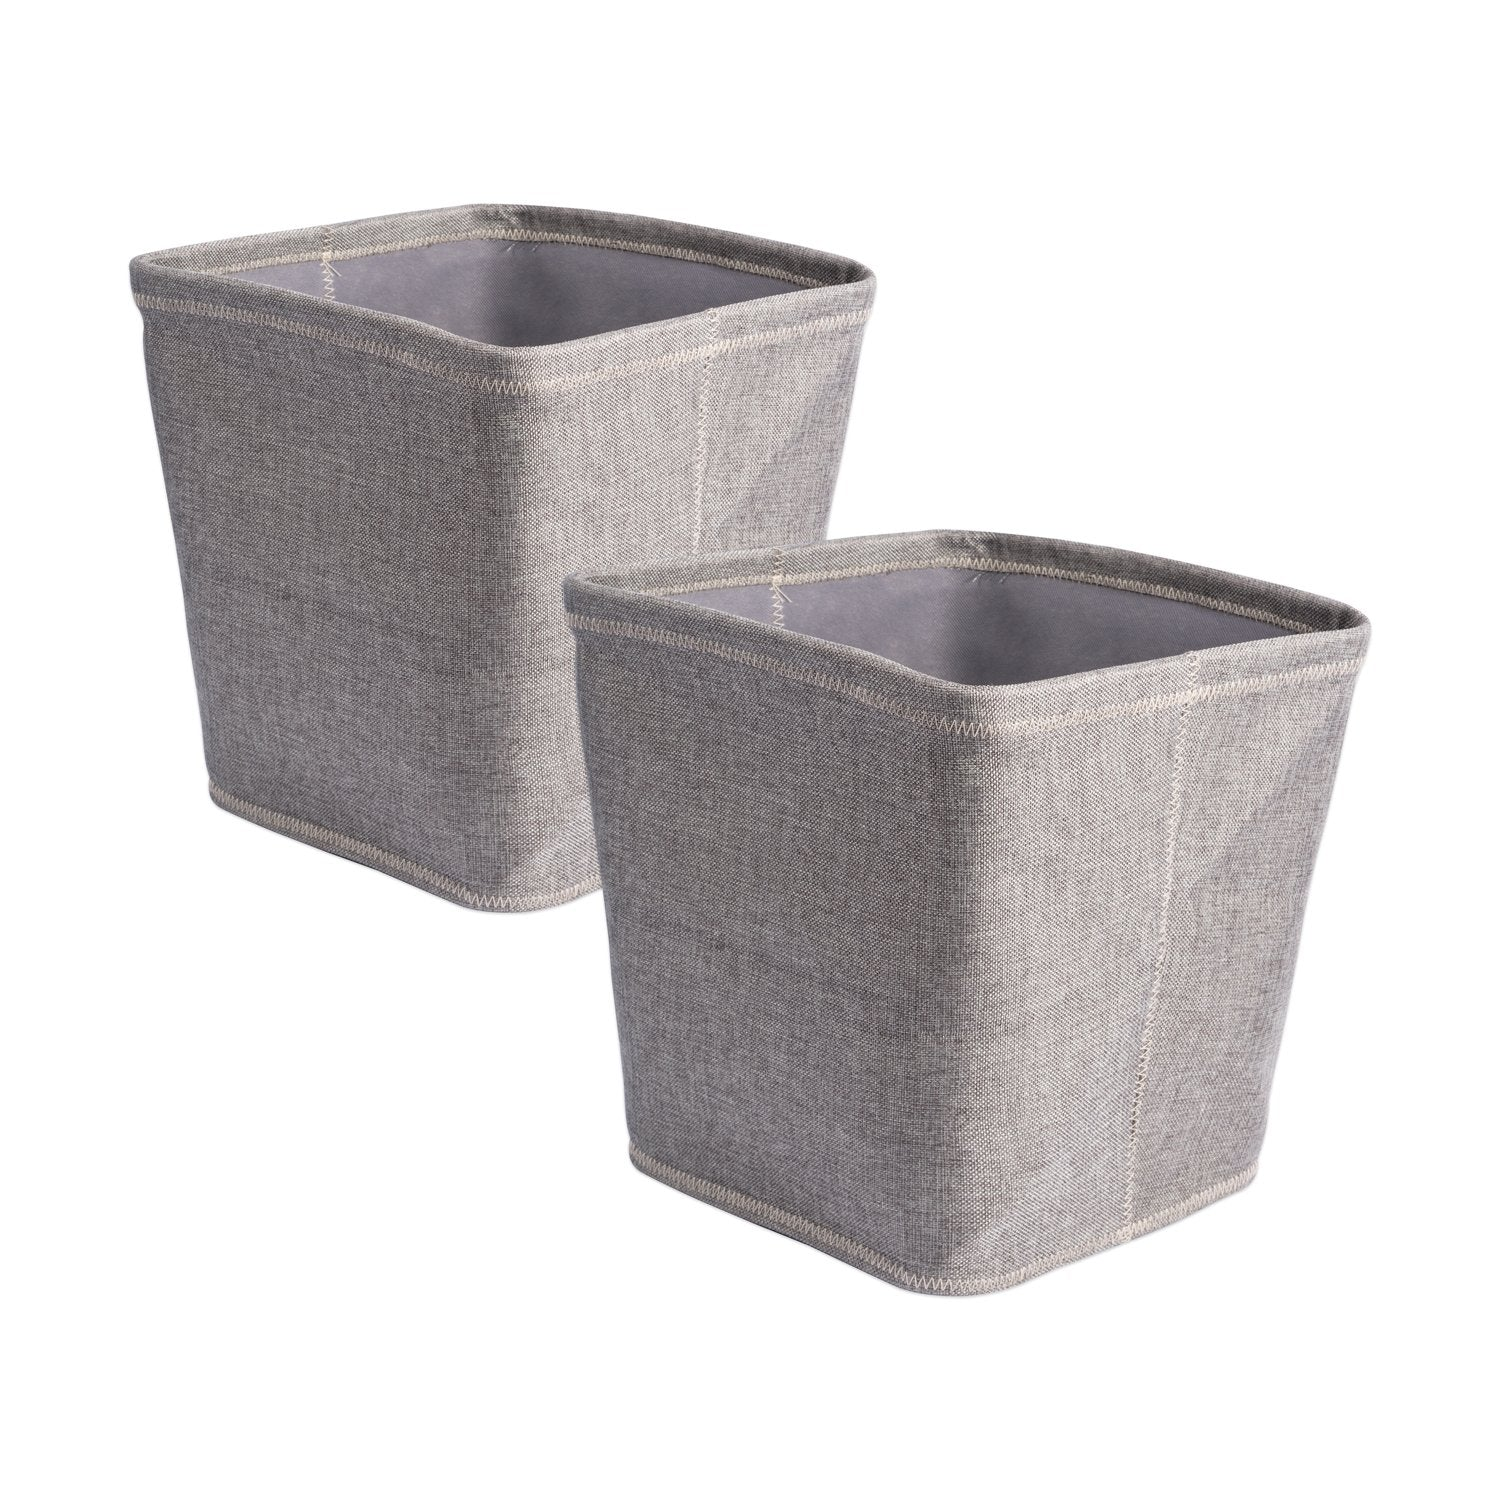 "DII Collapsible Polyester Storage Basket or Bins, Home Organizer Solution for Home, Office Desk, Shelf, Bedroom & Closet (Set of 2 Large Cubes - 13"") - Gray"